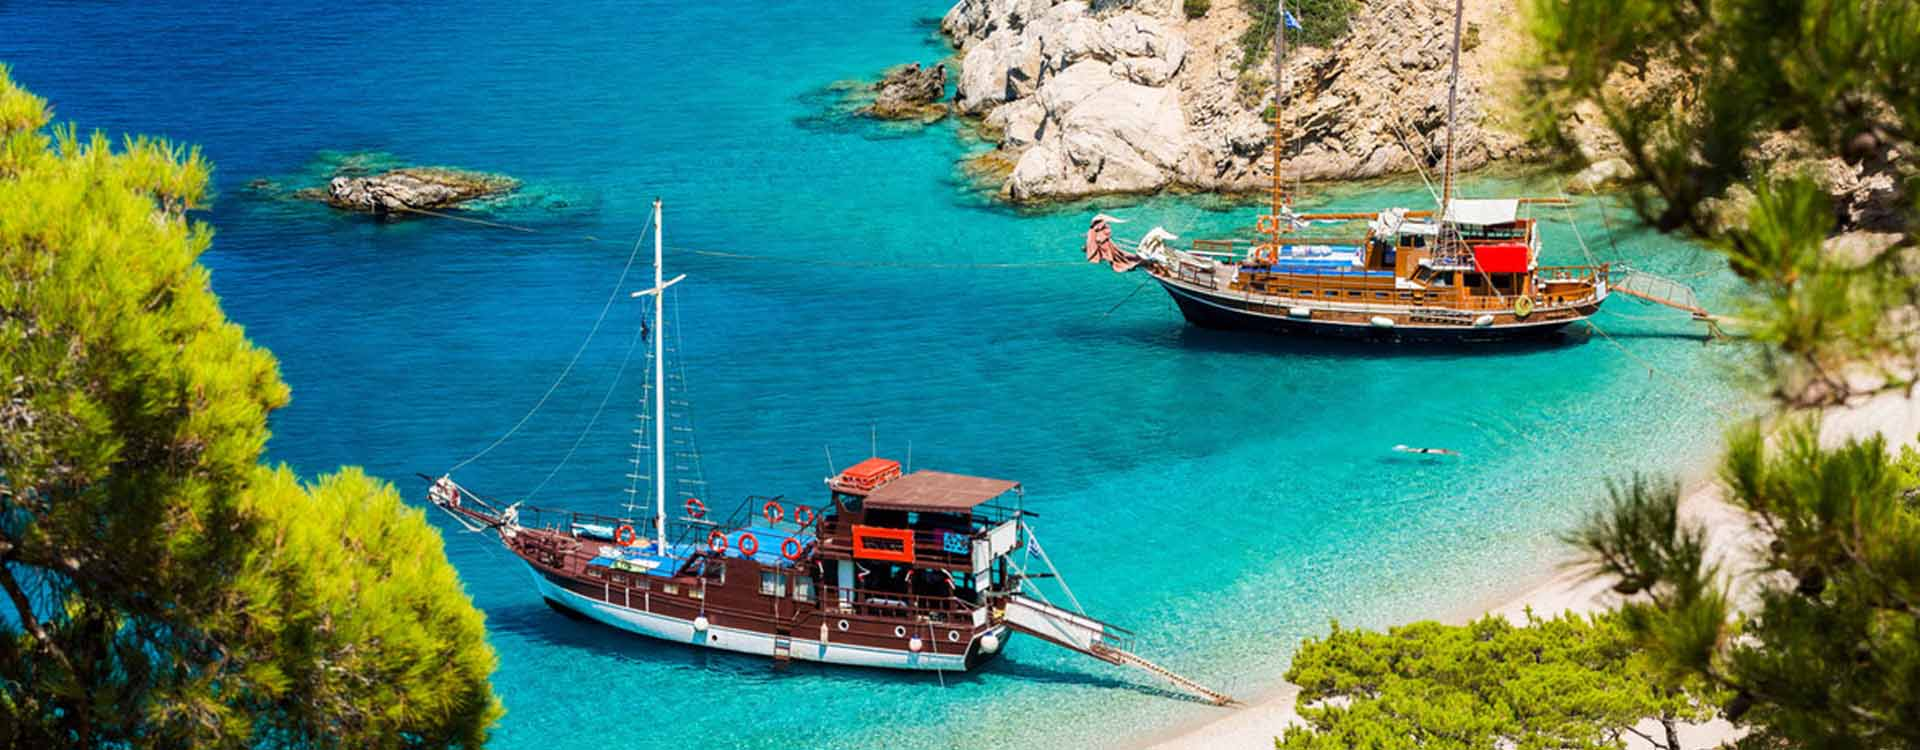 You can find us at the capital of Karpathos, Pigadia